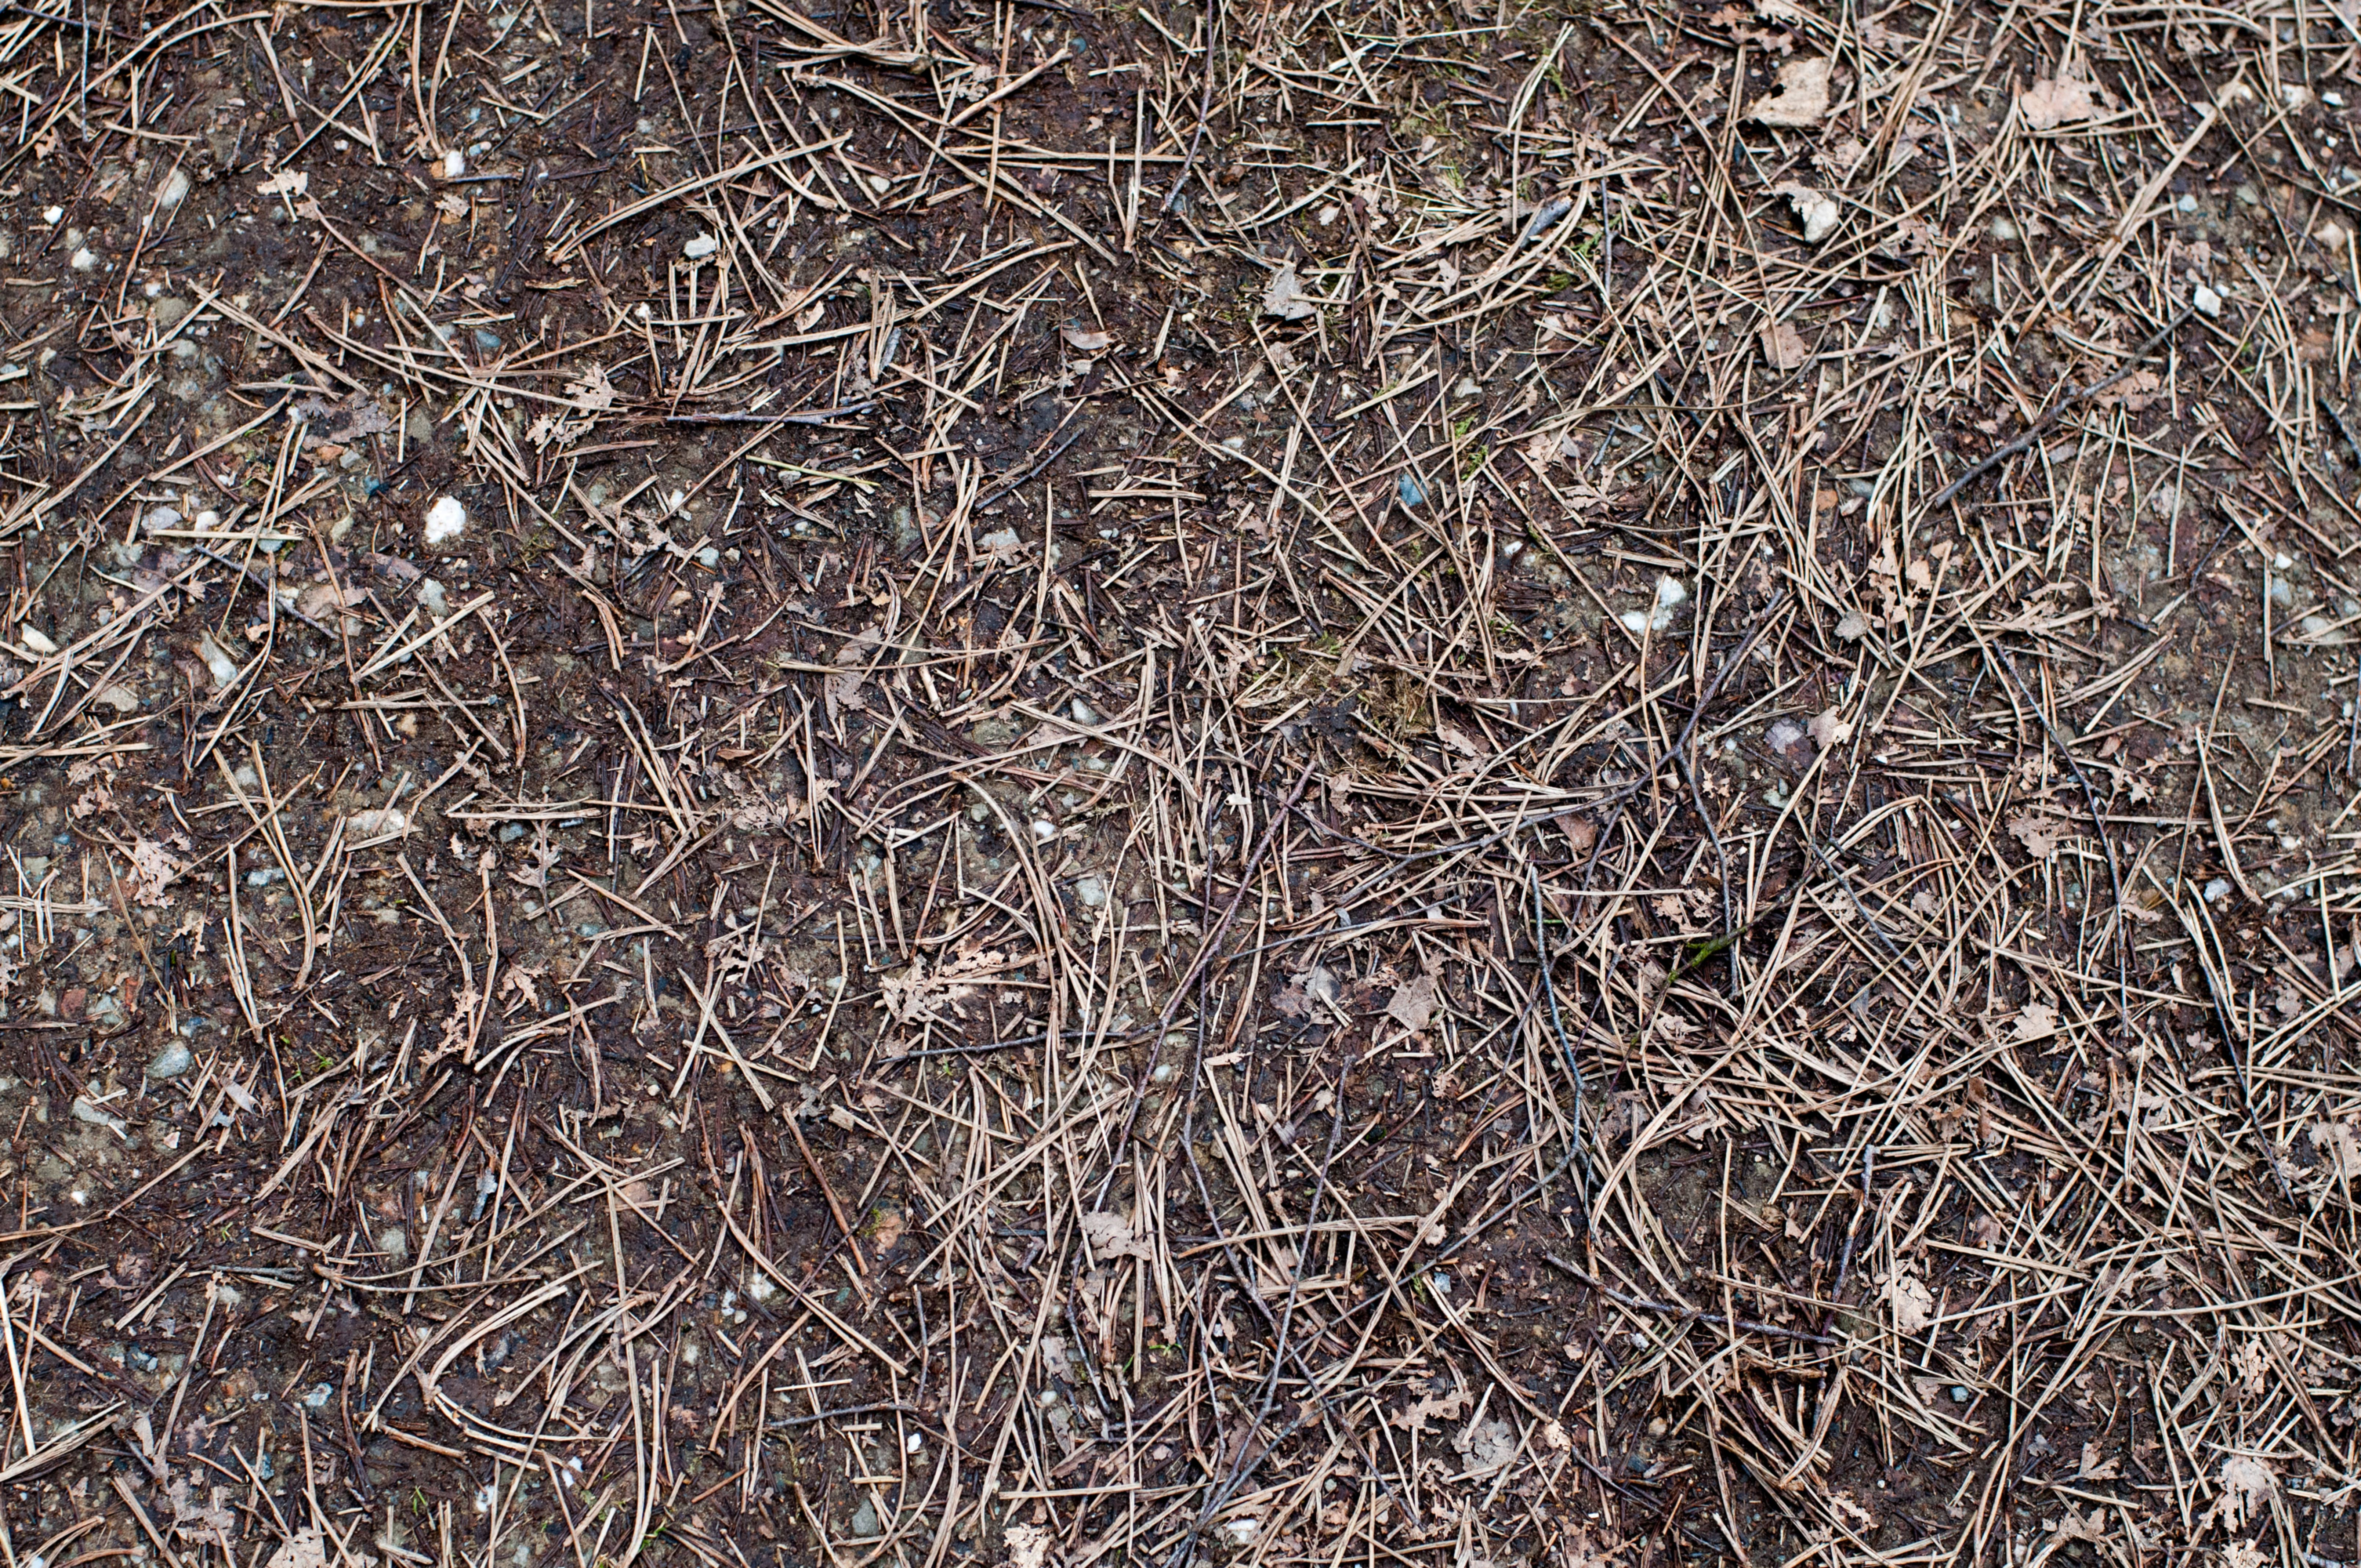 Forest Land Dirt and Pine Needles